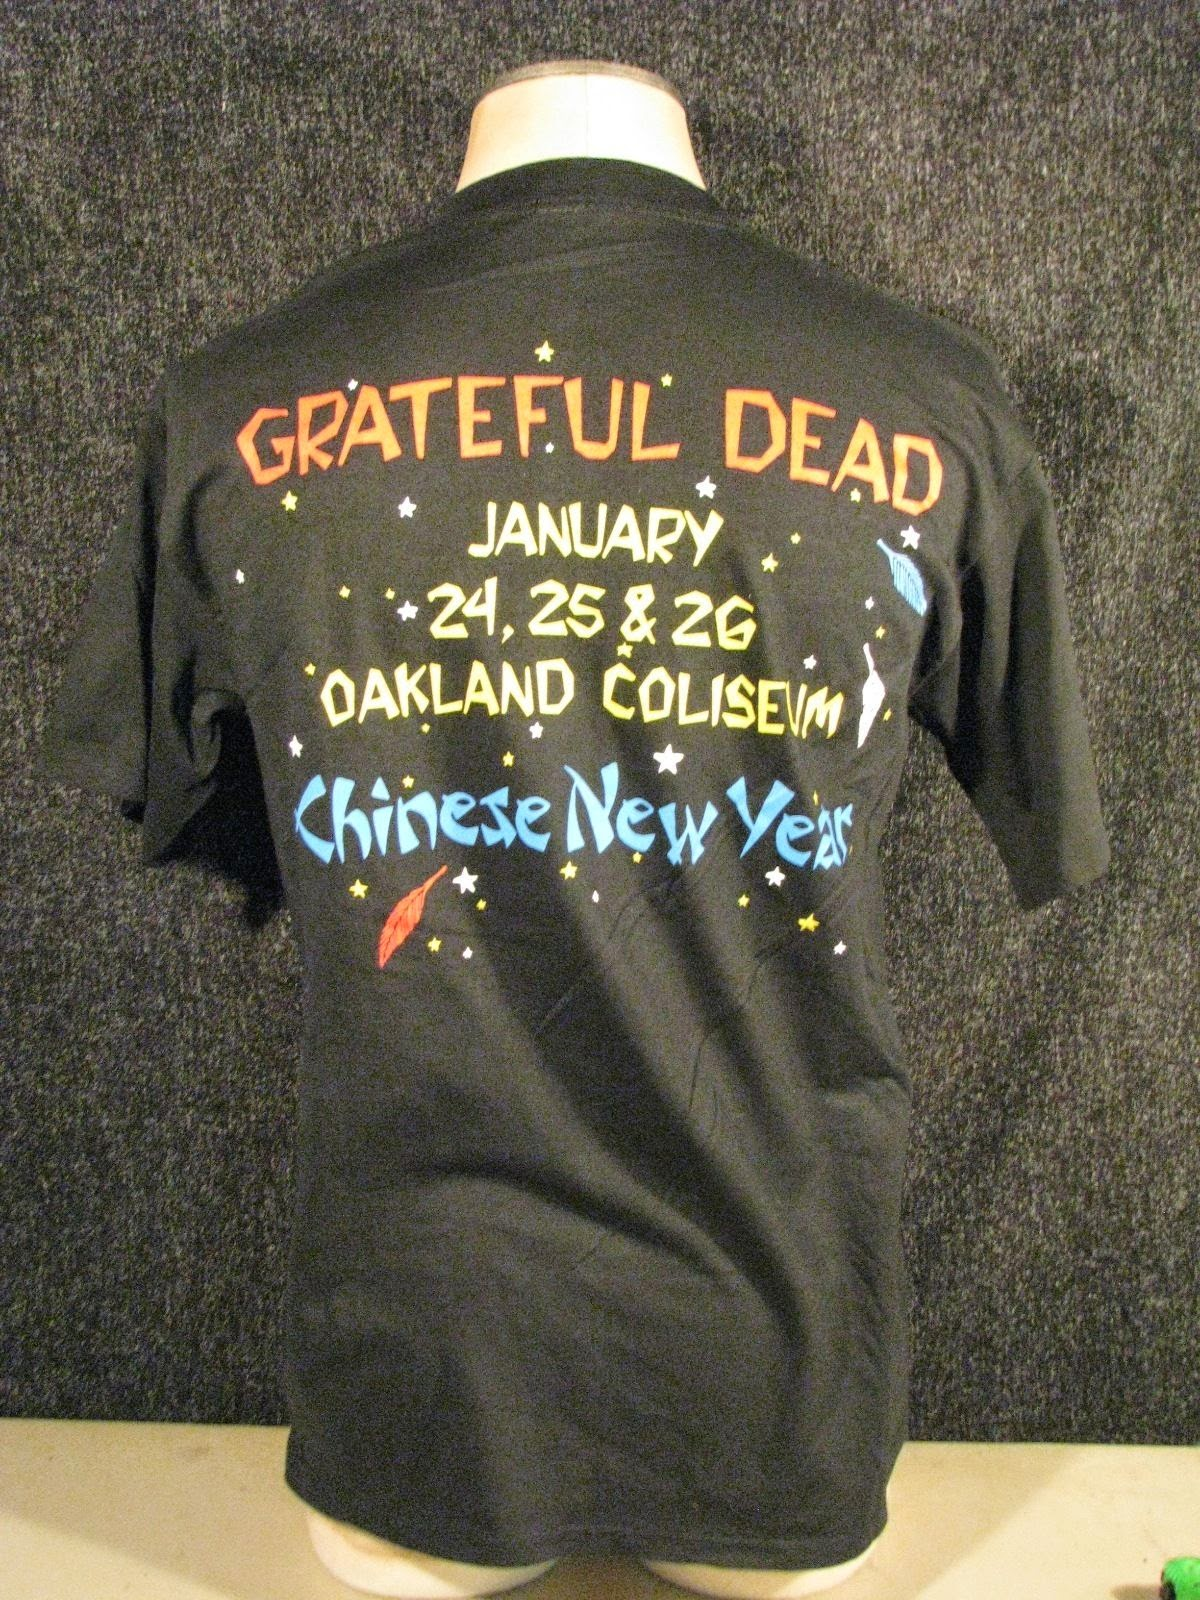 grateful dead original vintage chinese new year 1993 t shirt - Chinese New Year 1993